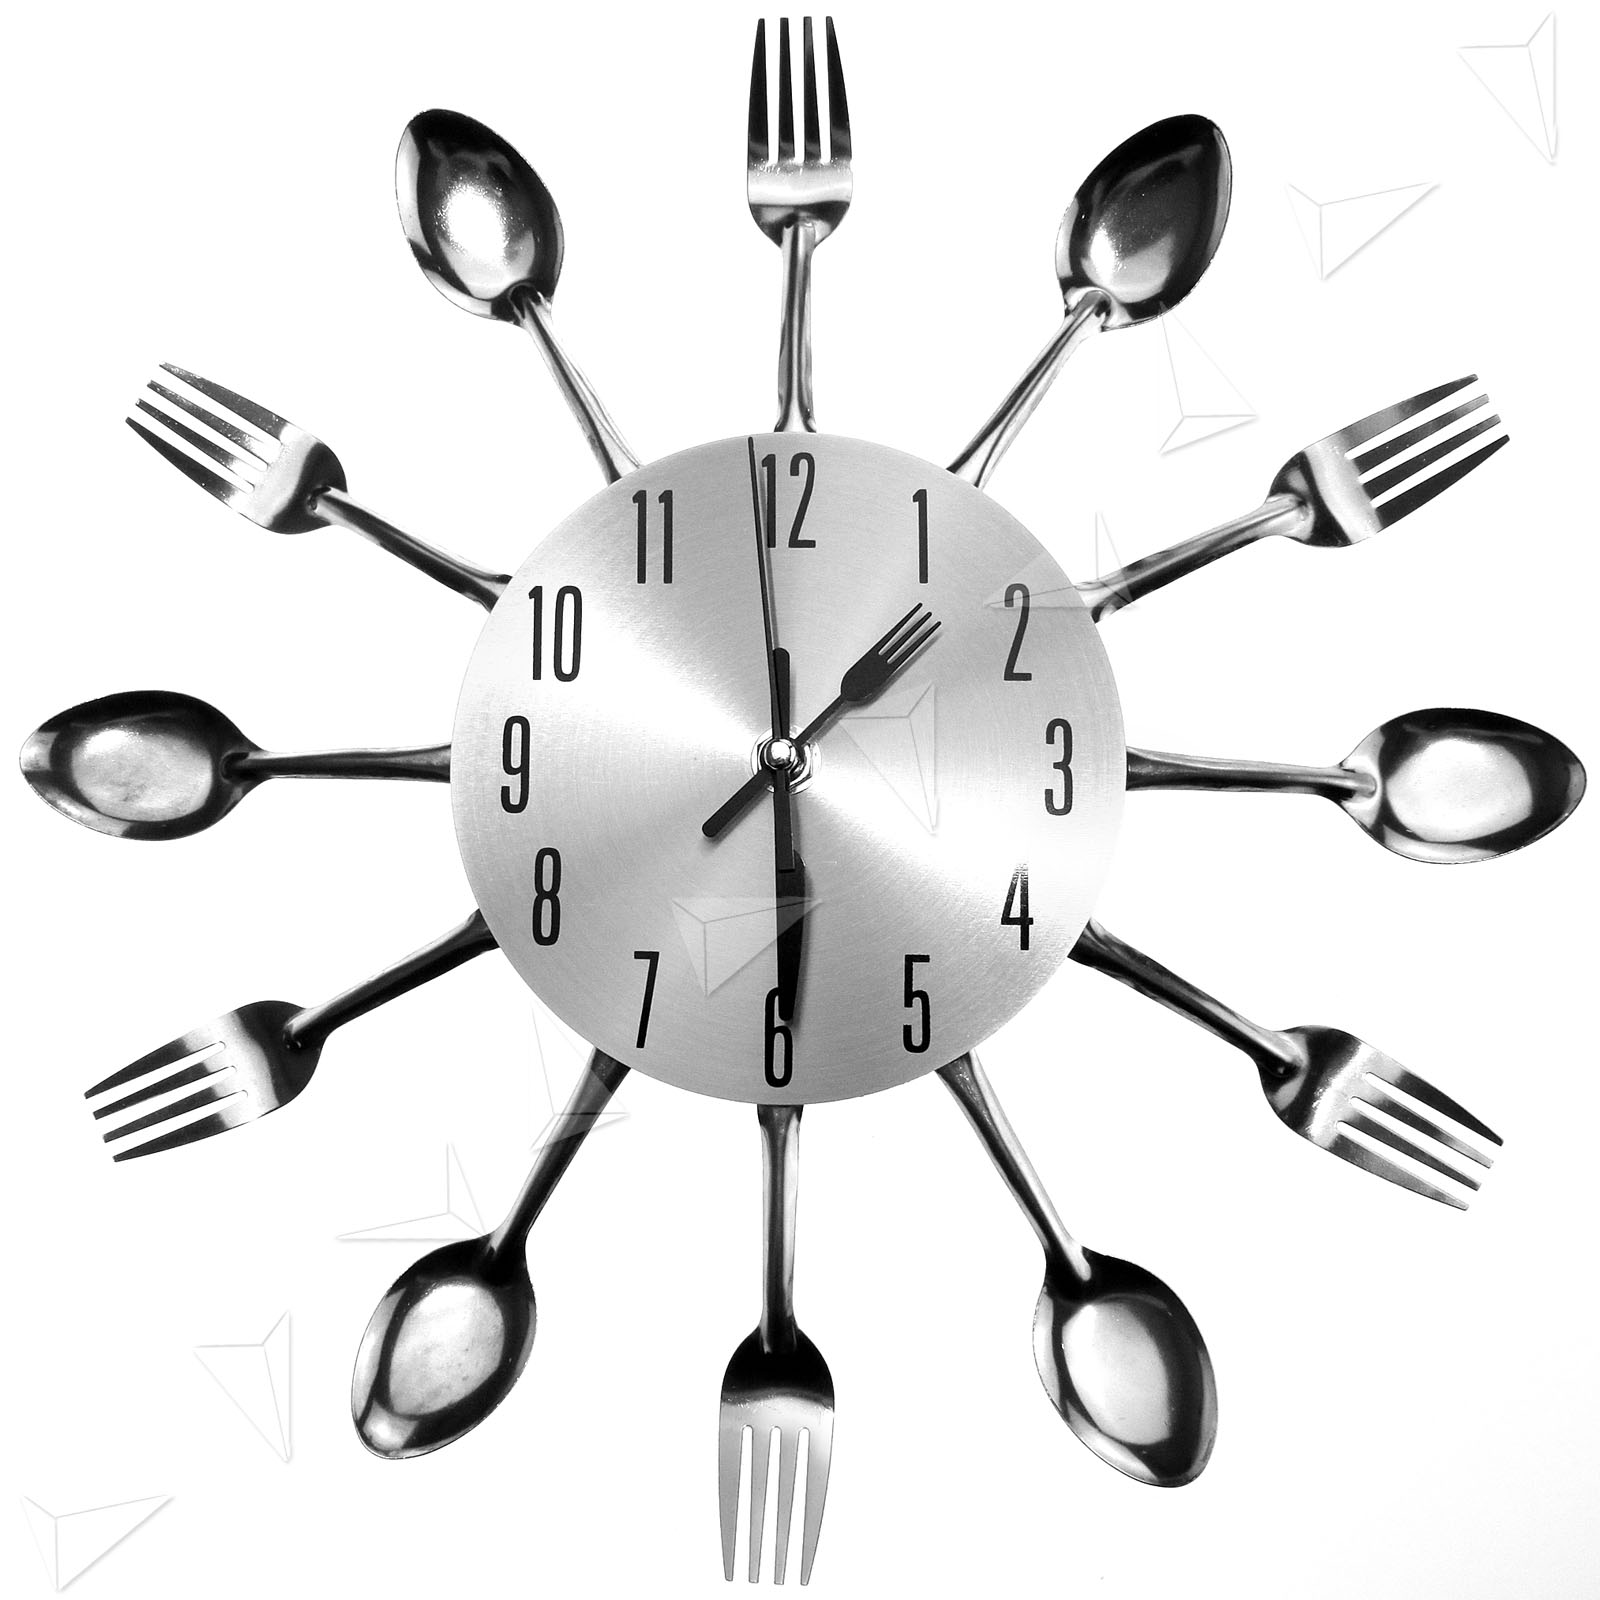 Modern Design Black or Sliver Cutlery Kitchen Wall Clock Spoon ...